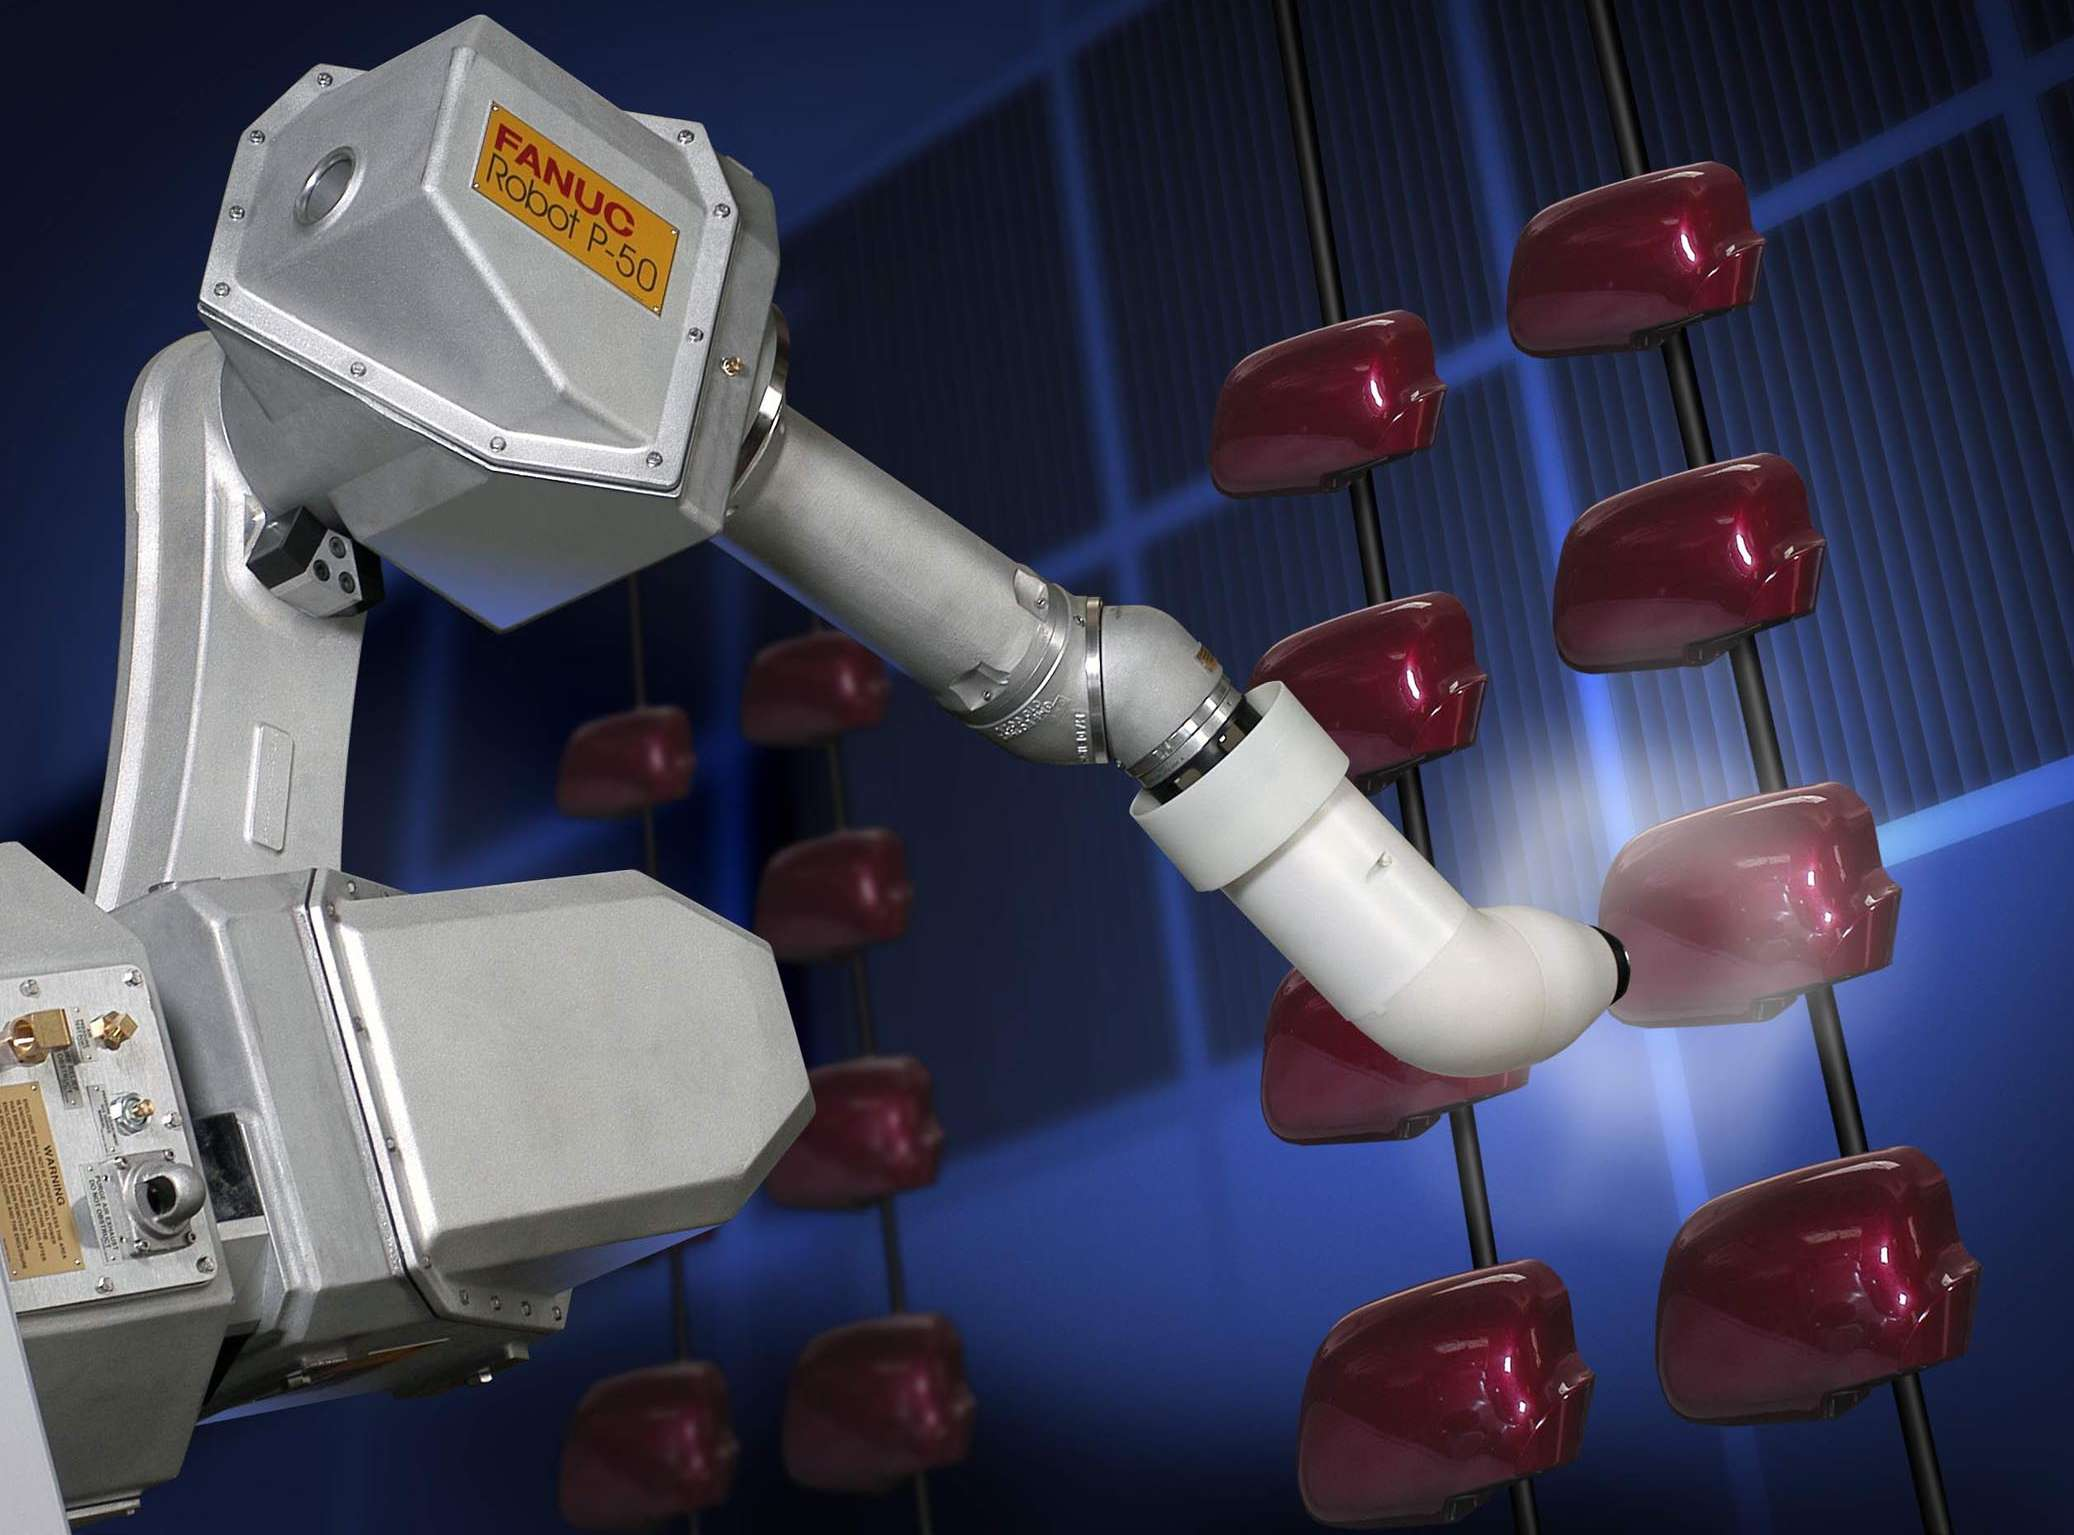 New P 50 Robot Offers Maximum Performance And Affordable